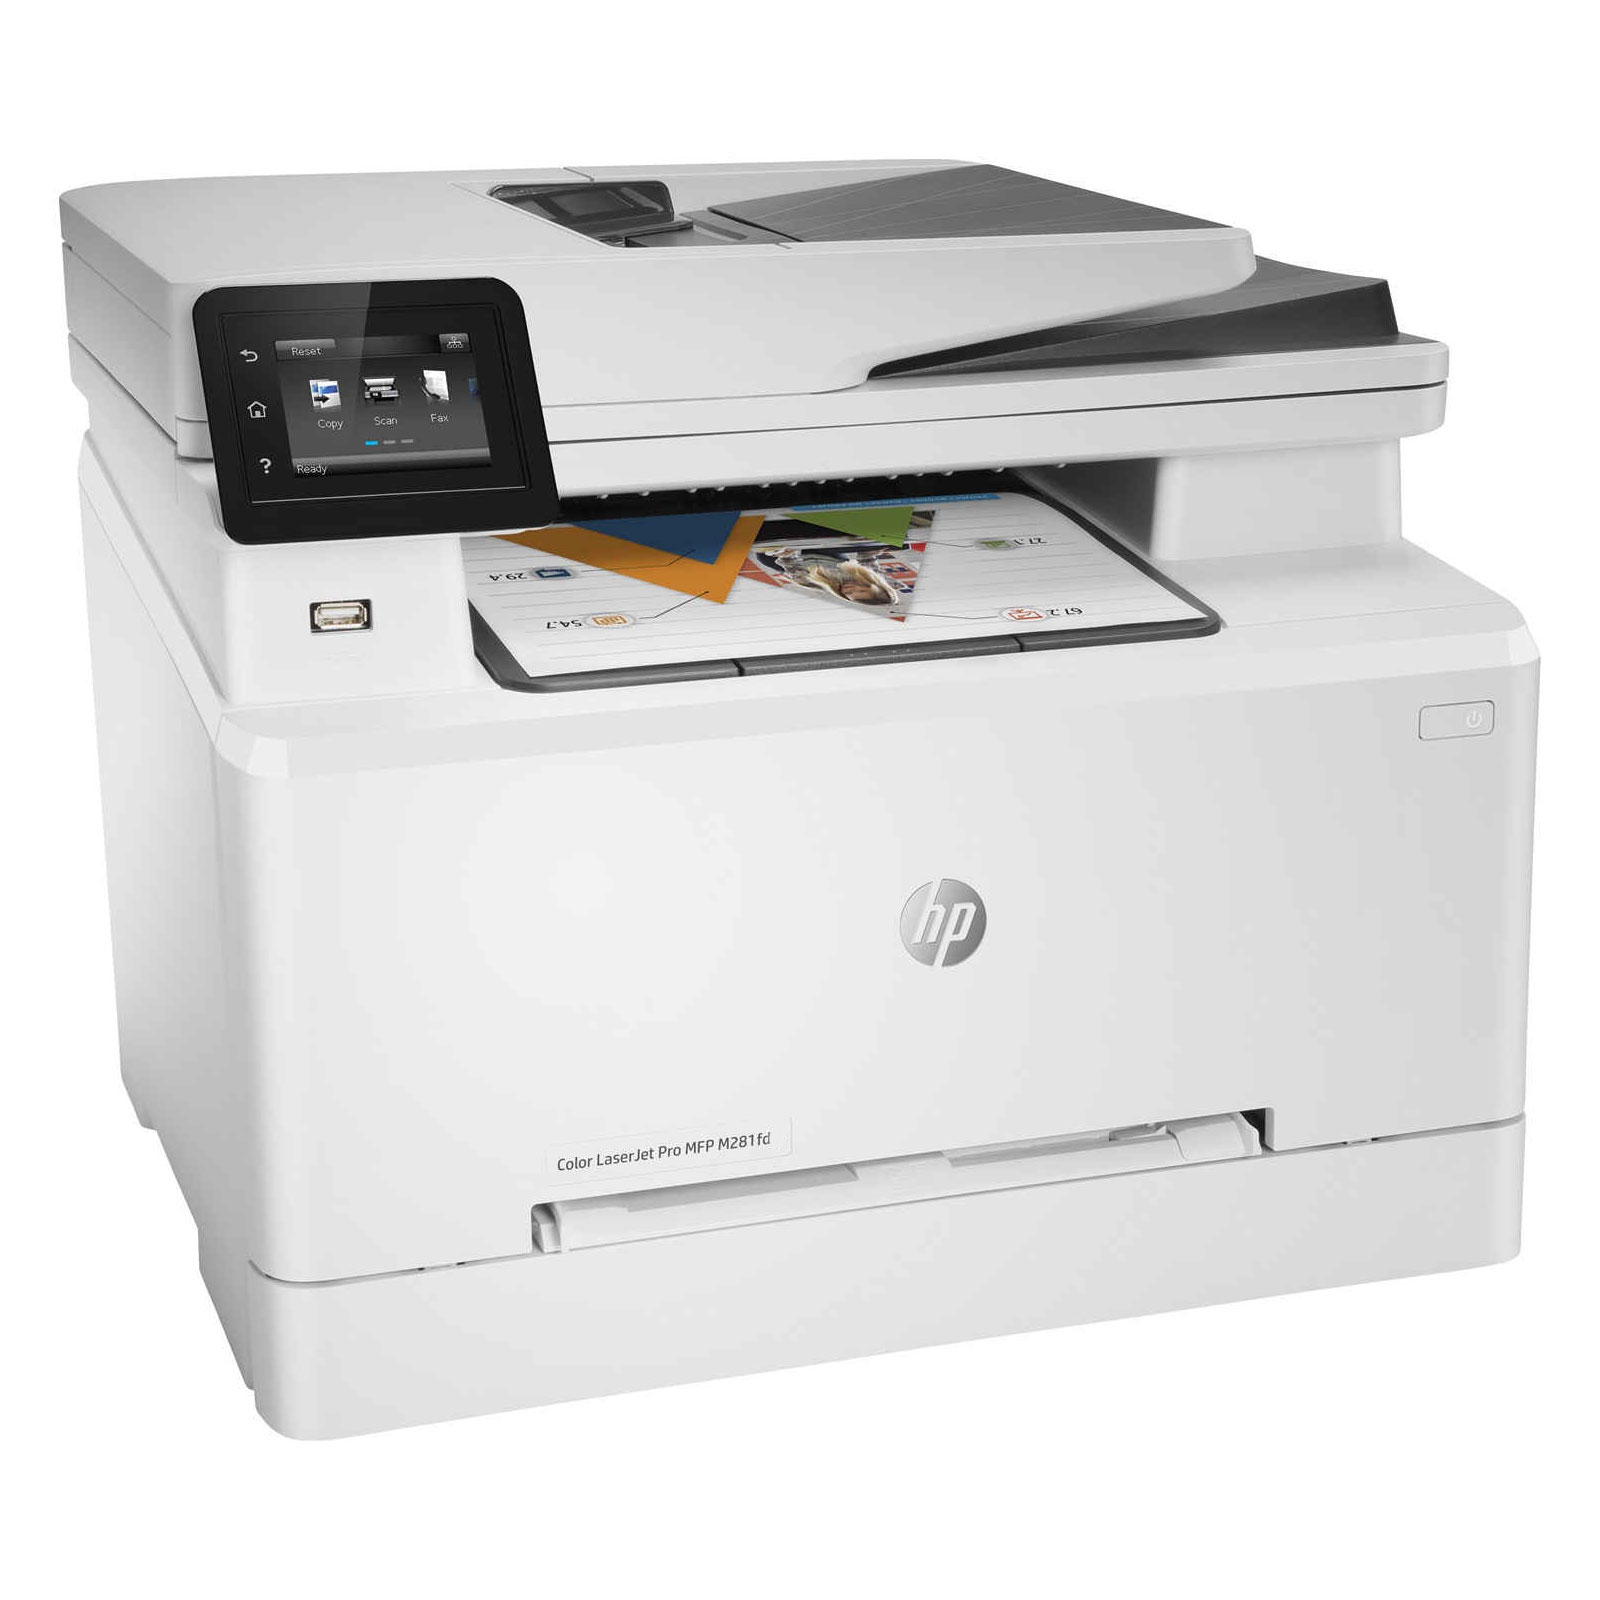 hp color laserjet pro mfp m281fdn imprimante multifonction hp sur. Black Bedroom Furniture Sets. Home Design Ideas